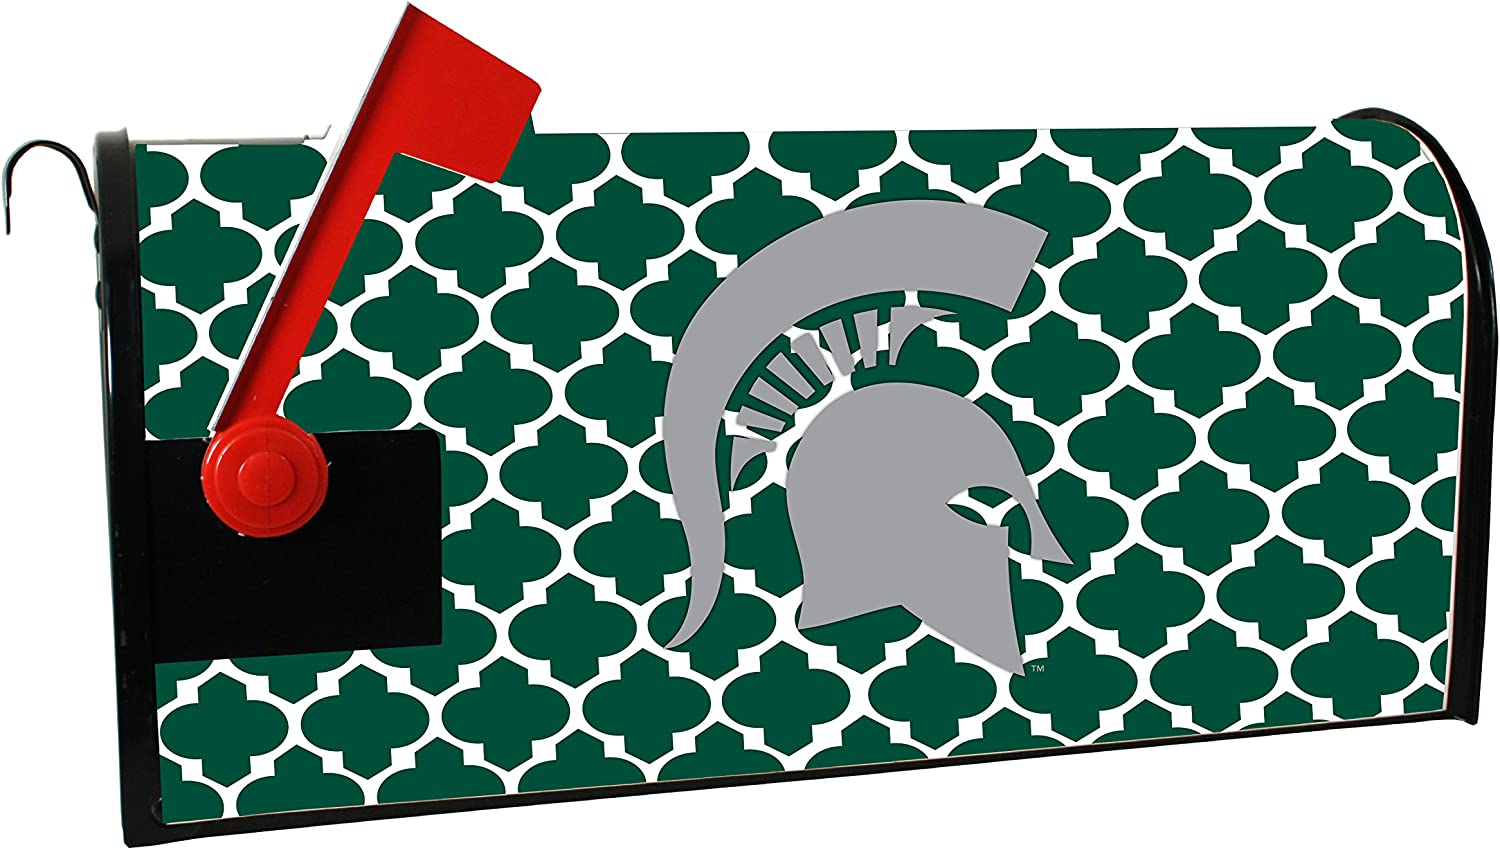 Michigan State Spartans Max 64% OFF Fixed price for sale Mailbox Cover-Michigan University